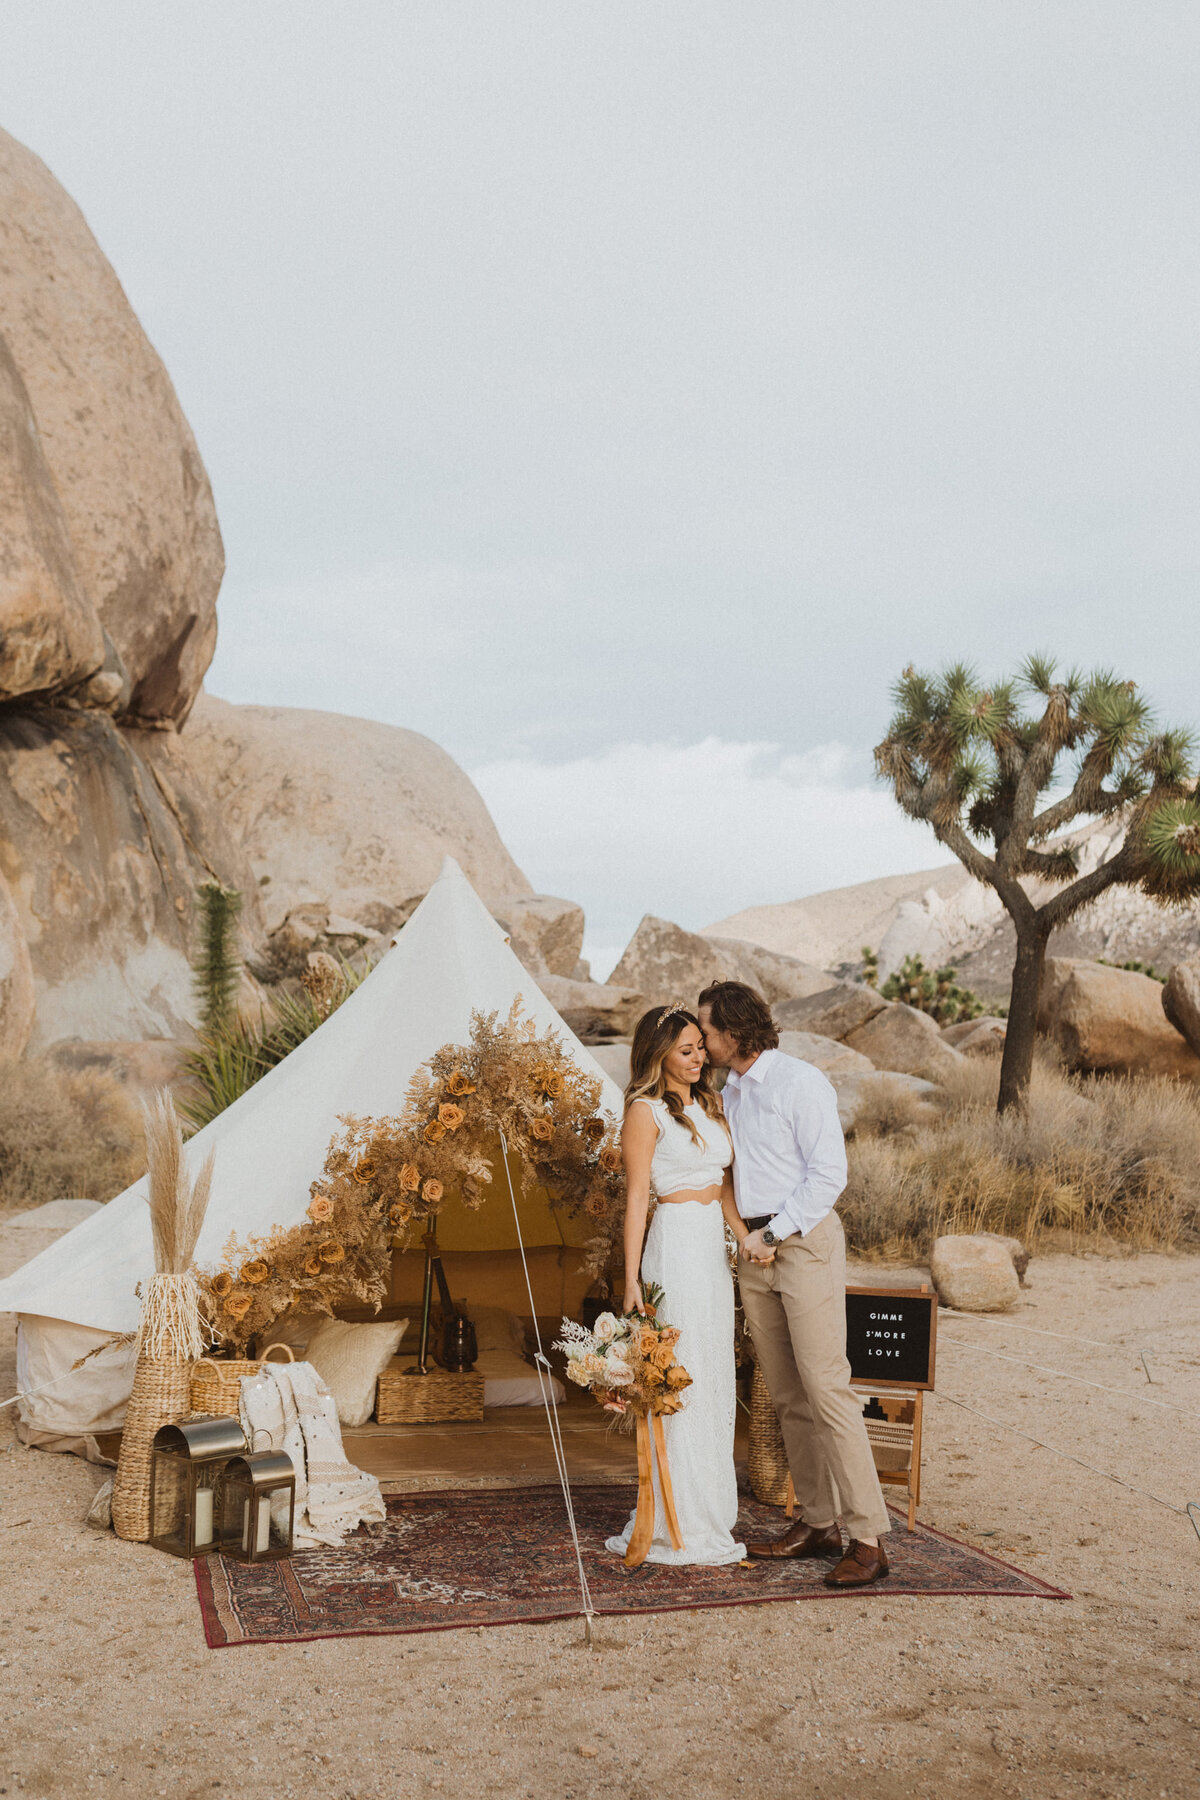 liv_hettinga_photography_joshua_tree_adventure_elopement-46